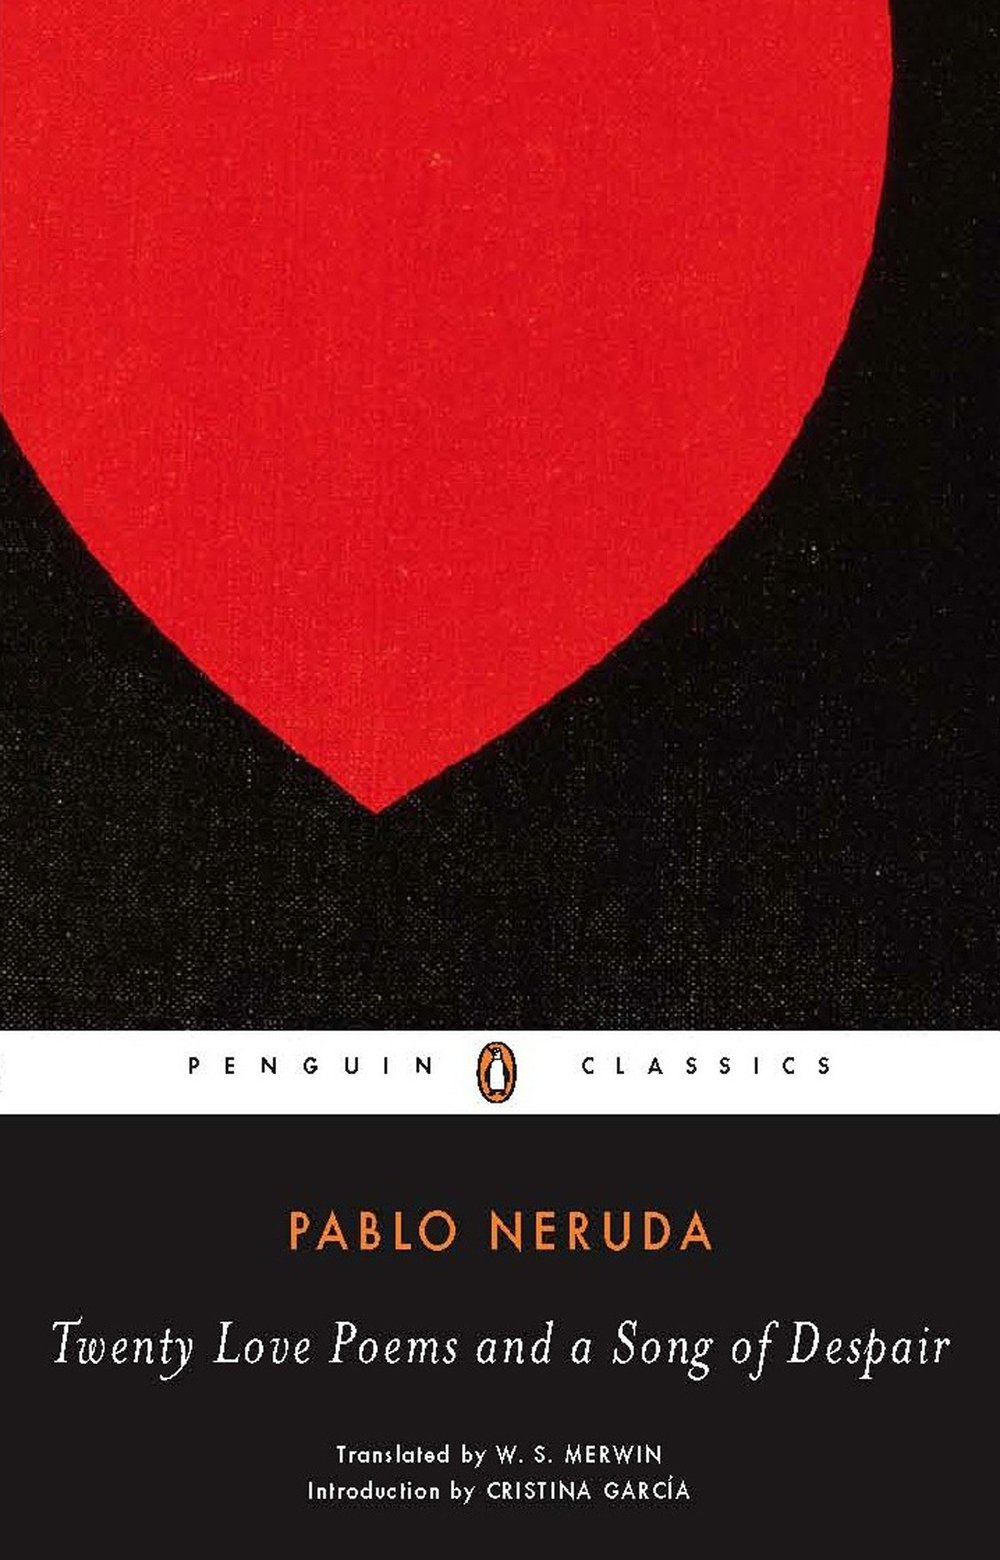 TWENTY LOVE POEMS AND A SONG OF DESPAIR by Pablo Neruda, Translated by W.S. Merwin   This book remains among the most popular works of Nobel Prize-winning poet, Pablo Neruda, even after its first appearance in 1924. The rich use of nature symbolism to celebrate love and to express grief has not been surpassed in the literature of our century. Additionally, many regard W. S. Merwin's translations as the best versions of Neruda available in English. With the most recent introduction from Cristina Garcia, this book continues to inspire poets and lovers alike.